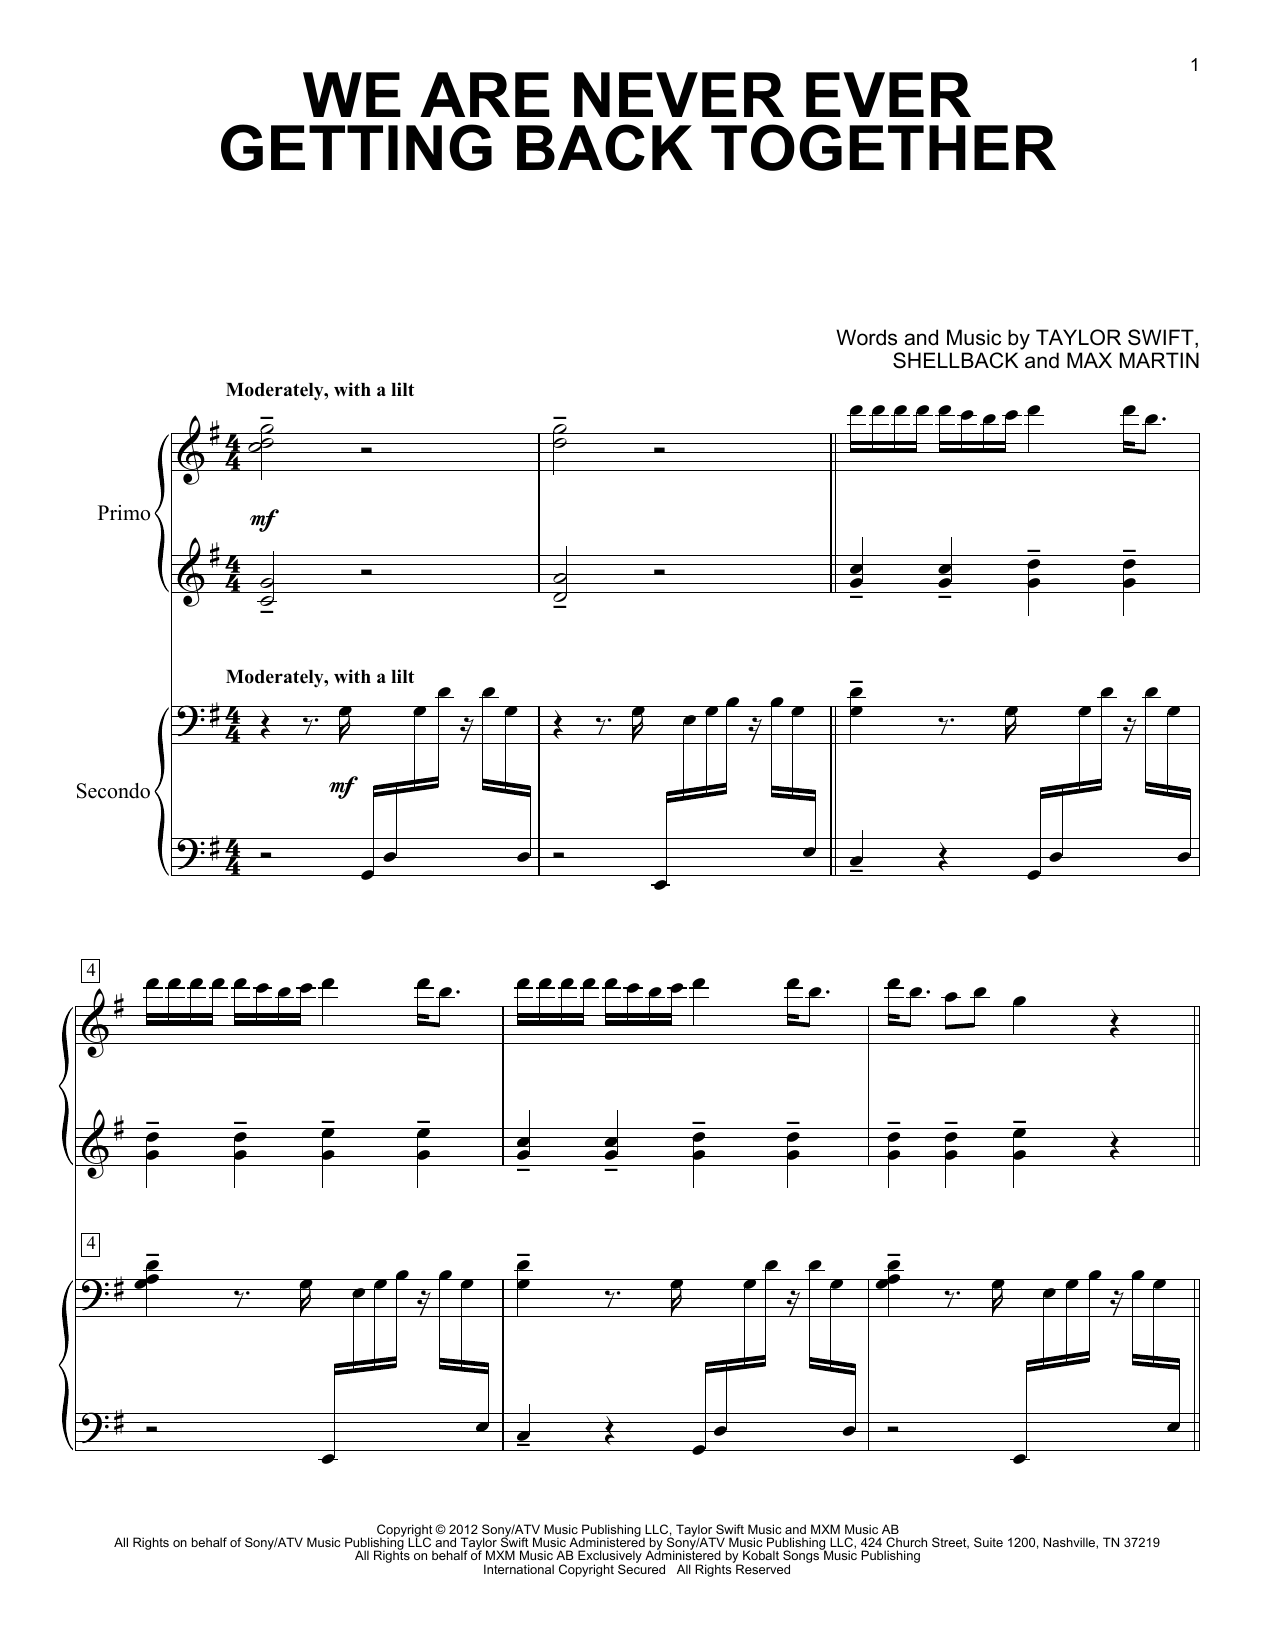 Partition piano We Are Never Ever Getting Back Together de Taylor Swift - 4 mains